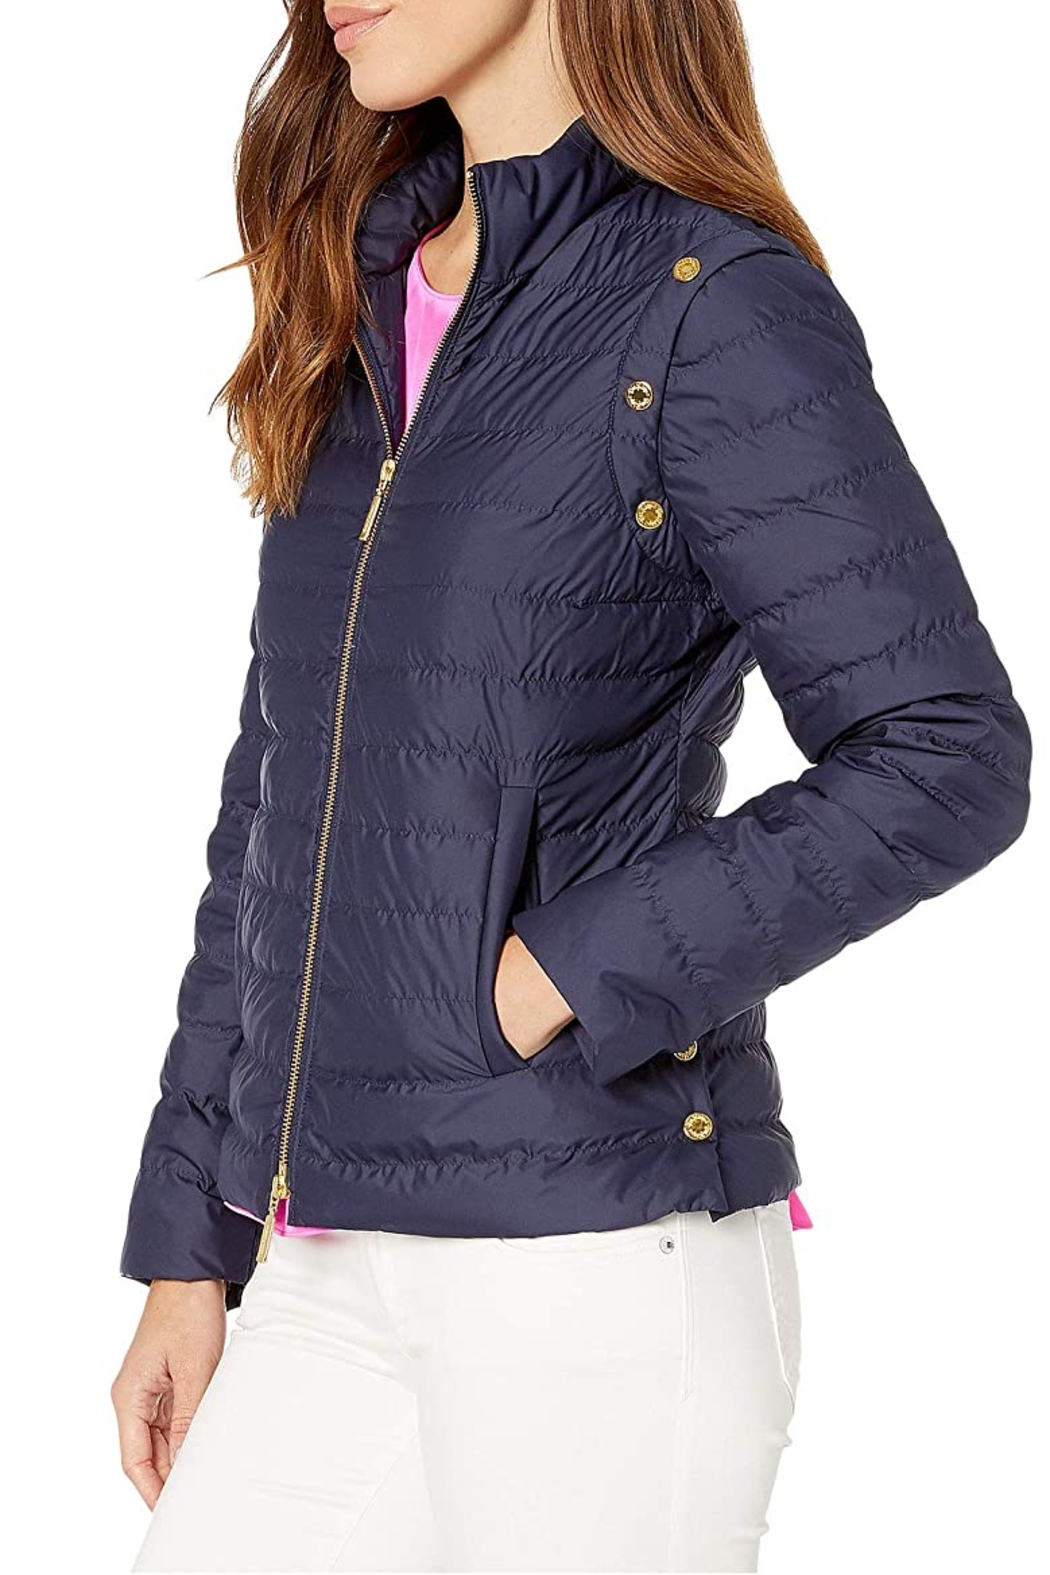 Lilly Pulitzer  Haisley puffer jacket - Front Full Image